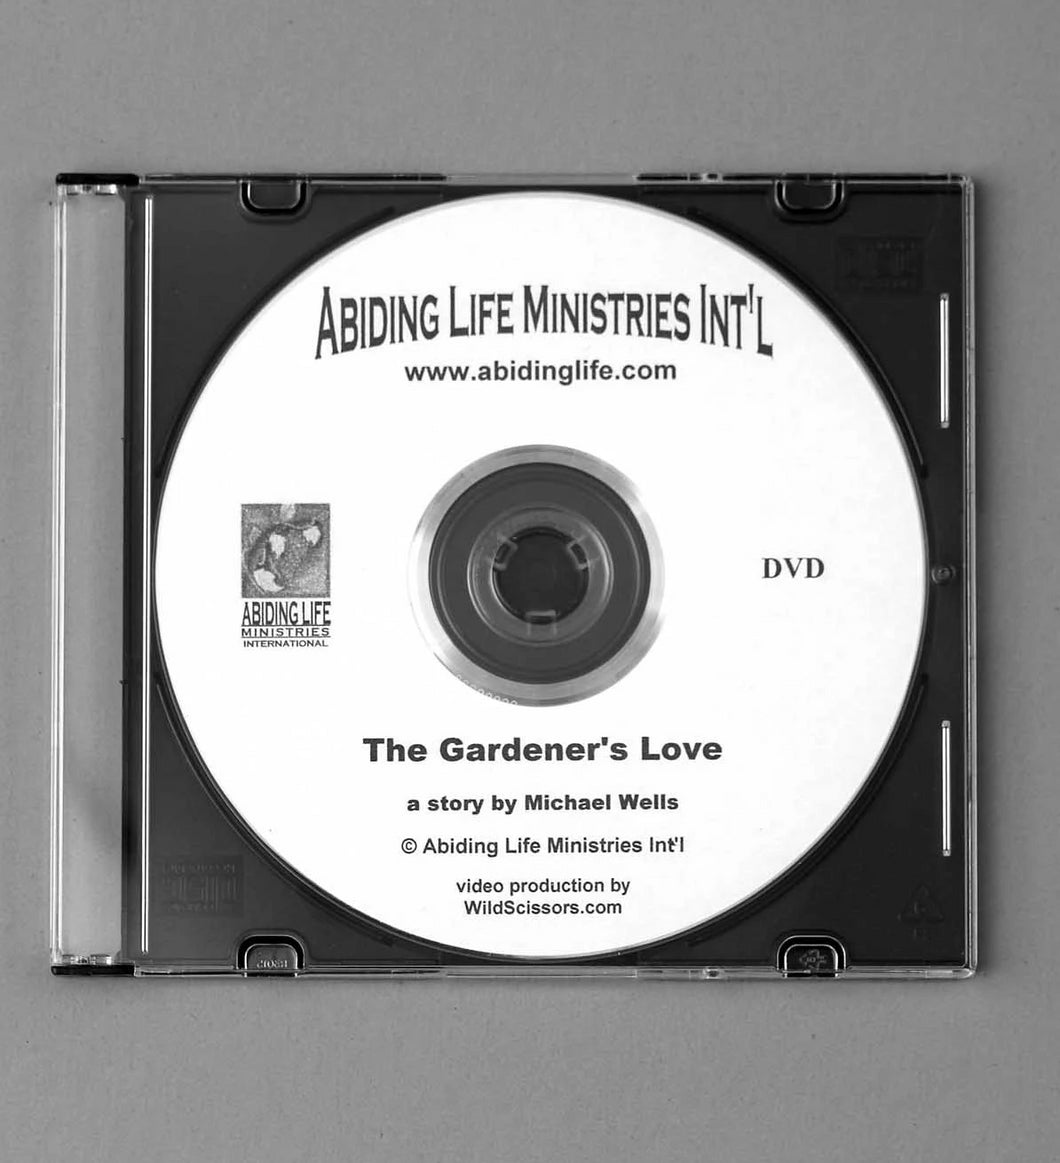 The Gardener's Love DVD